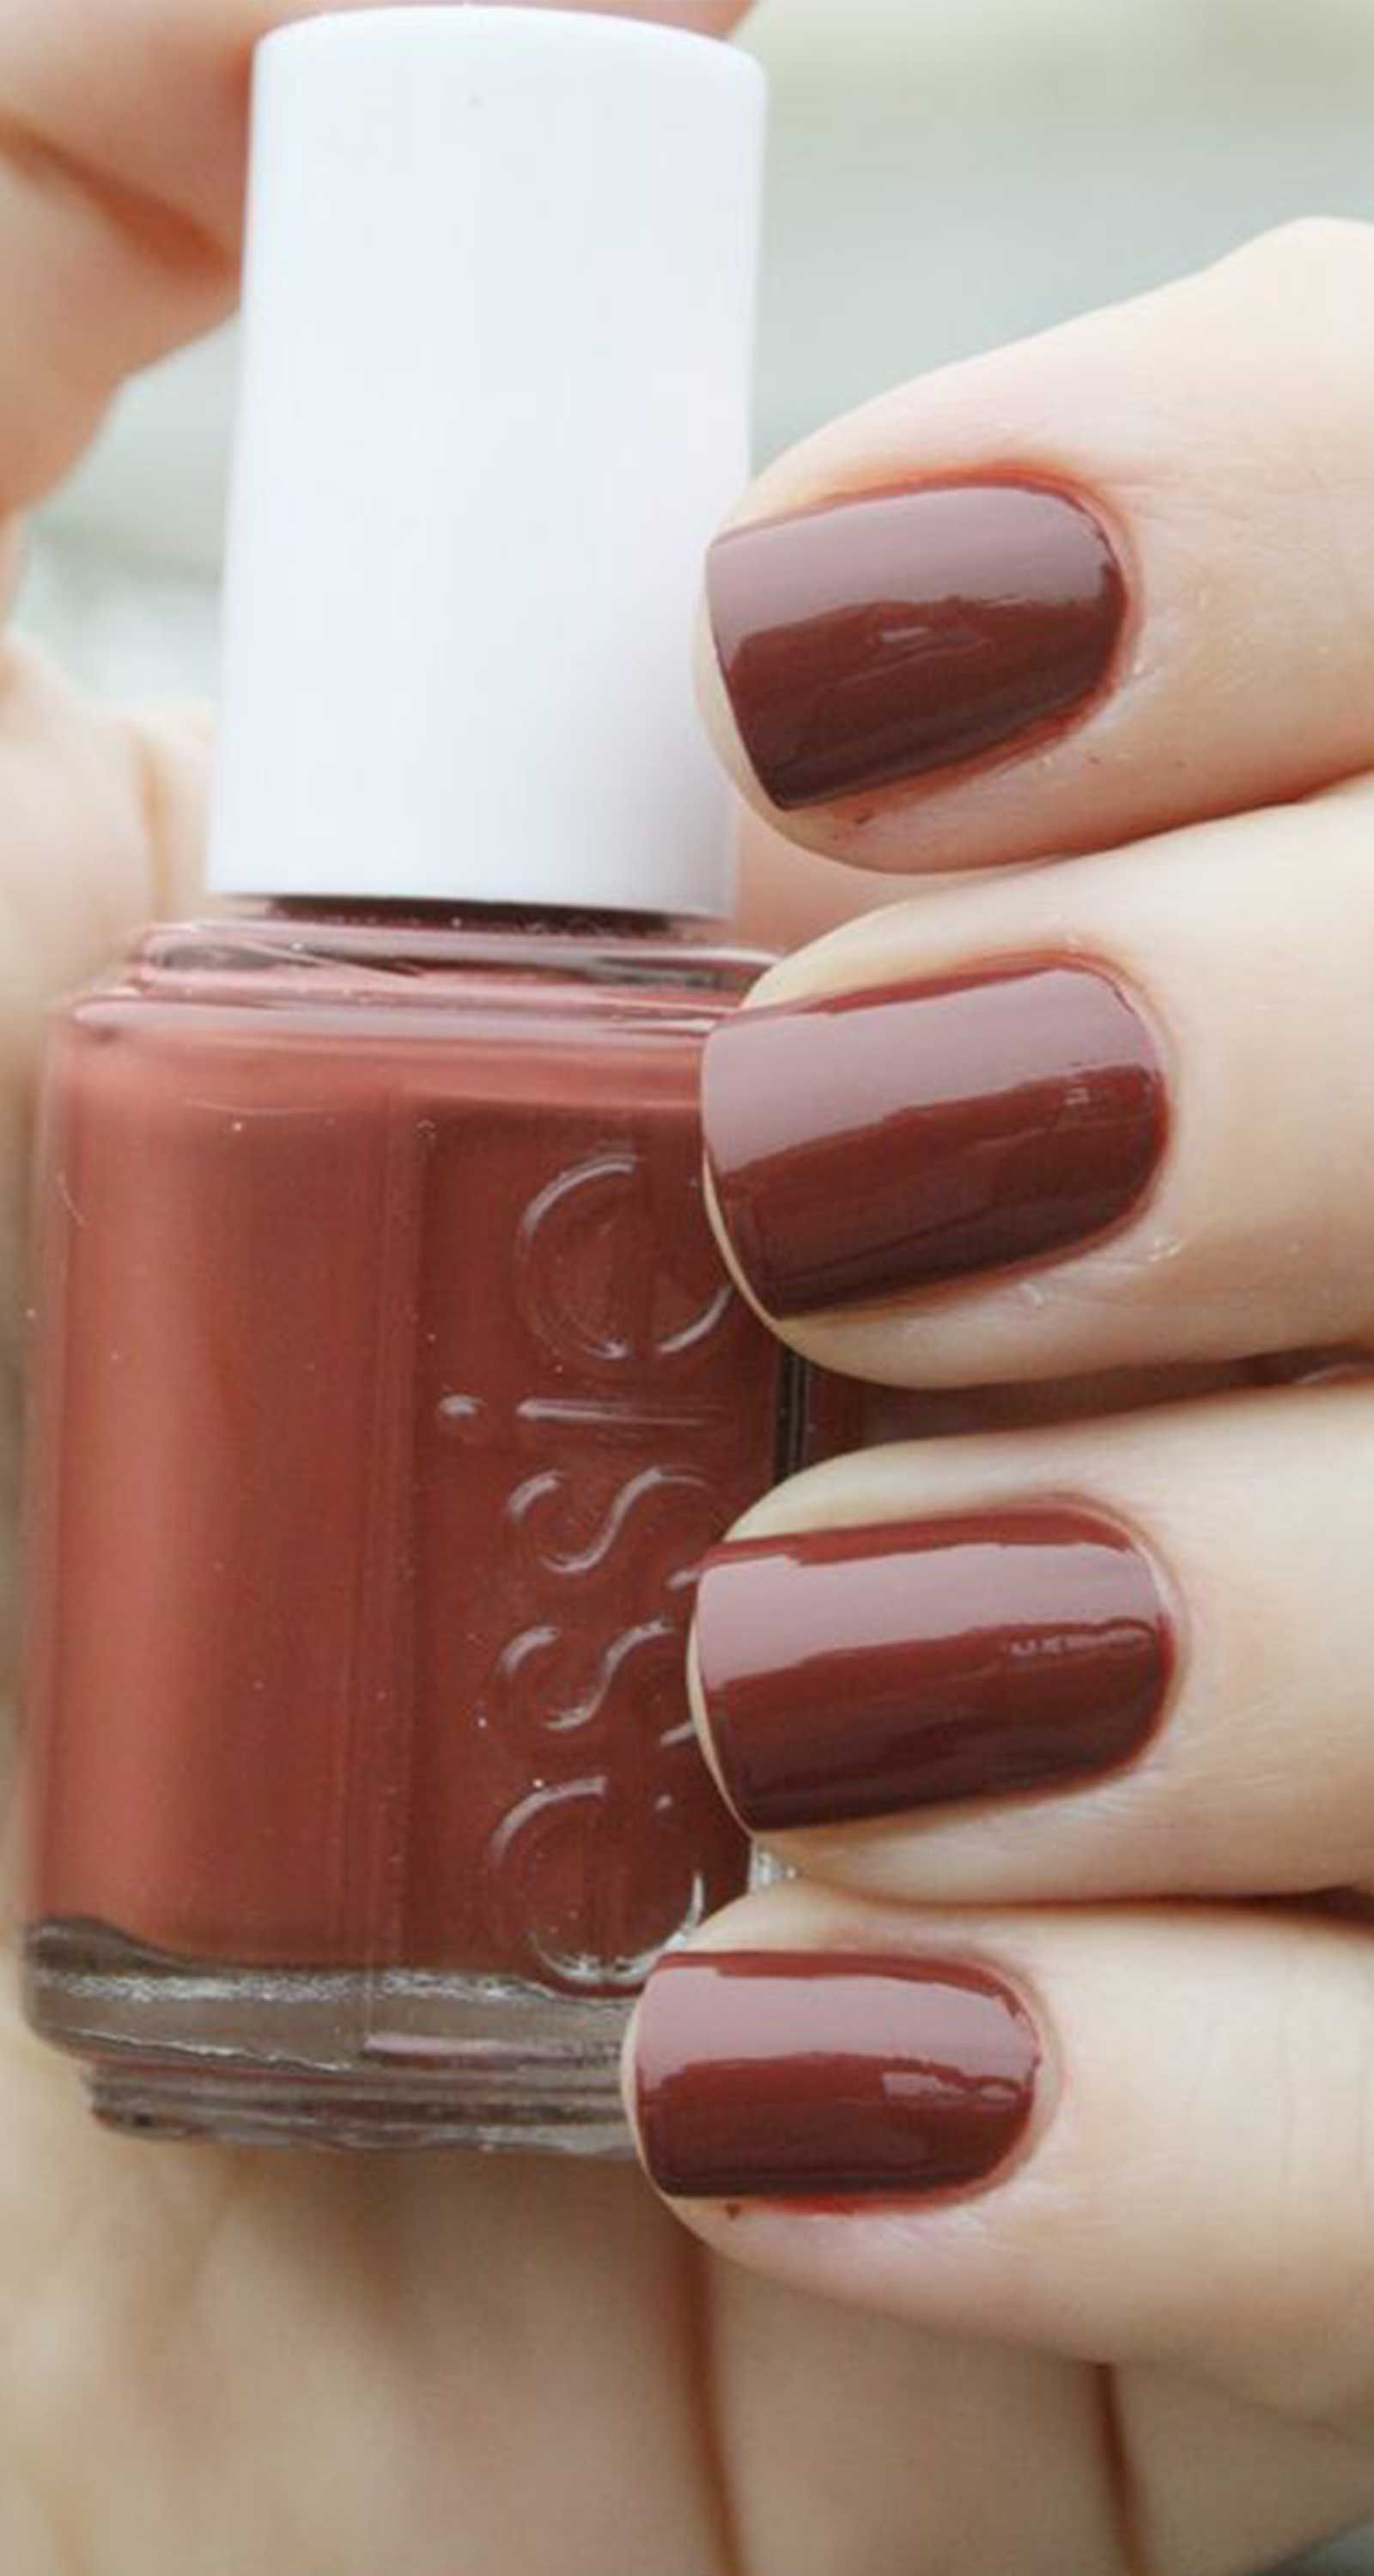 Amazing Essie Nail Colors You\'ll Love This Fall Season | Fall nail ...